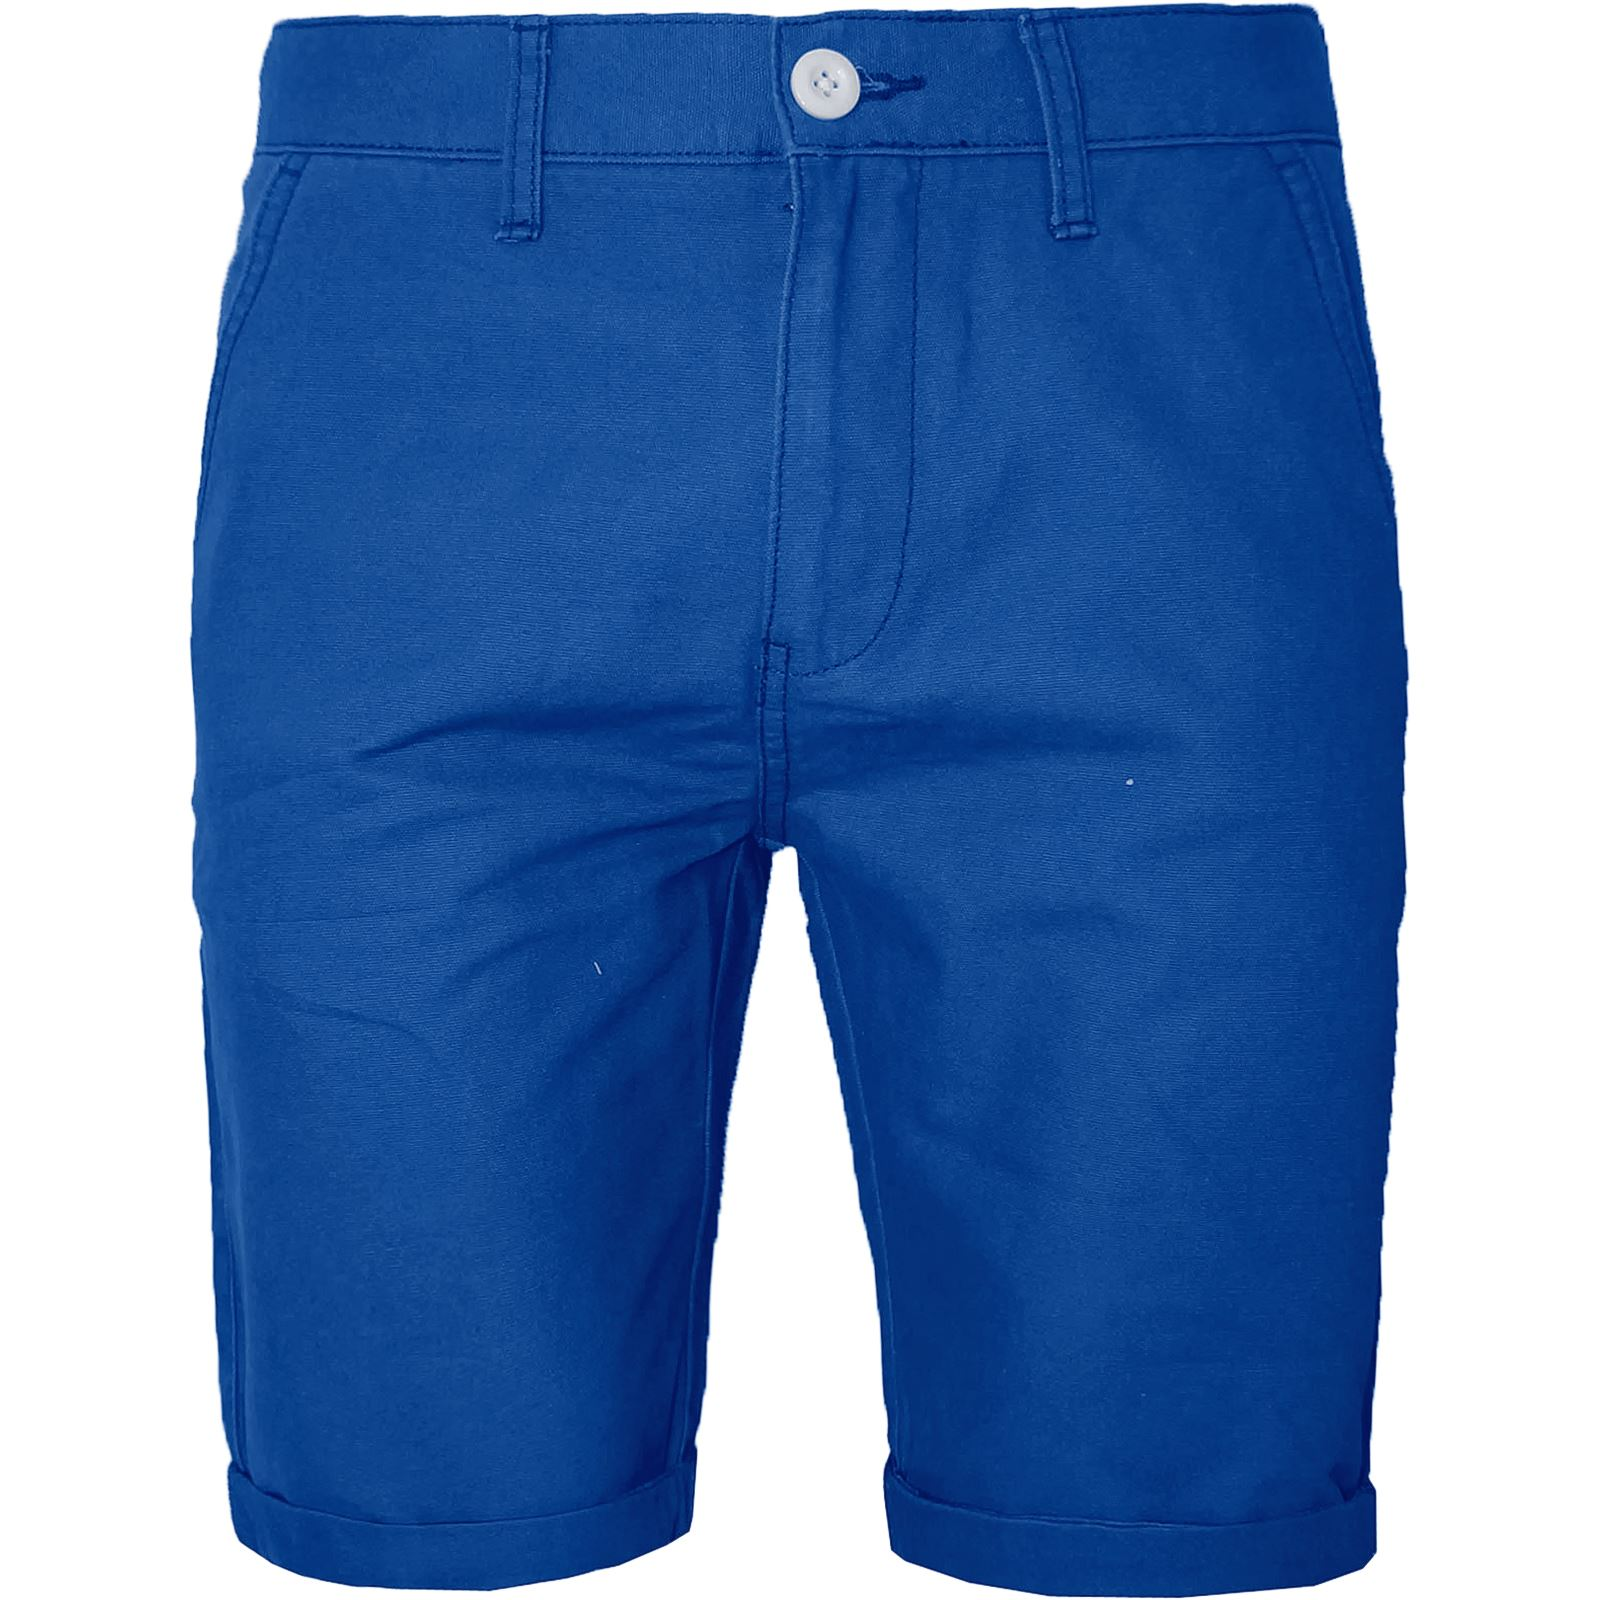 MENS CHINO SHORTS COTTON HALF PANT CASUAL JEANS TURN OVER CARGO ...